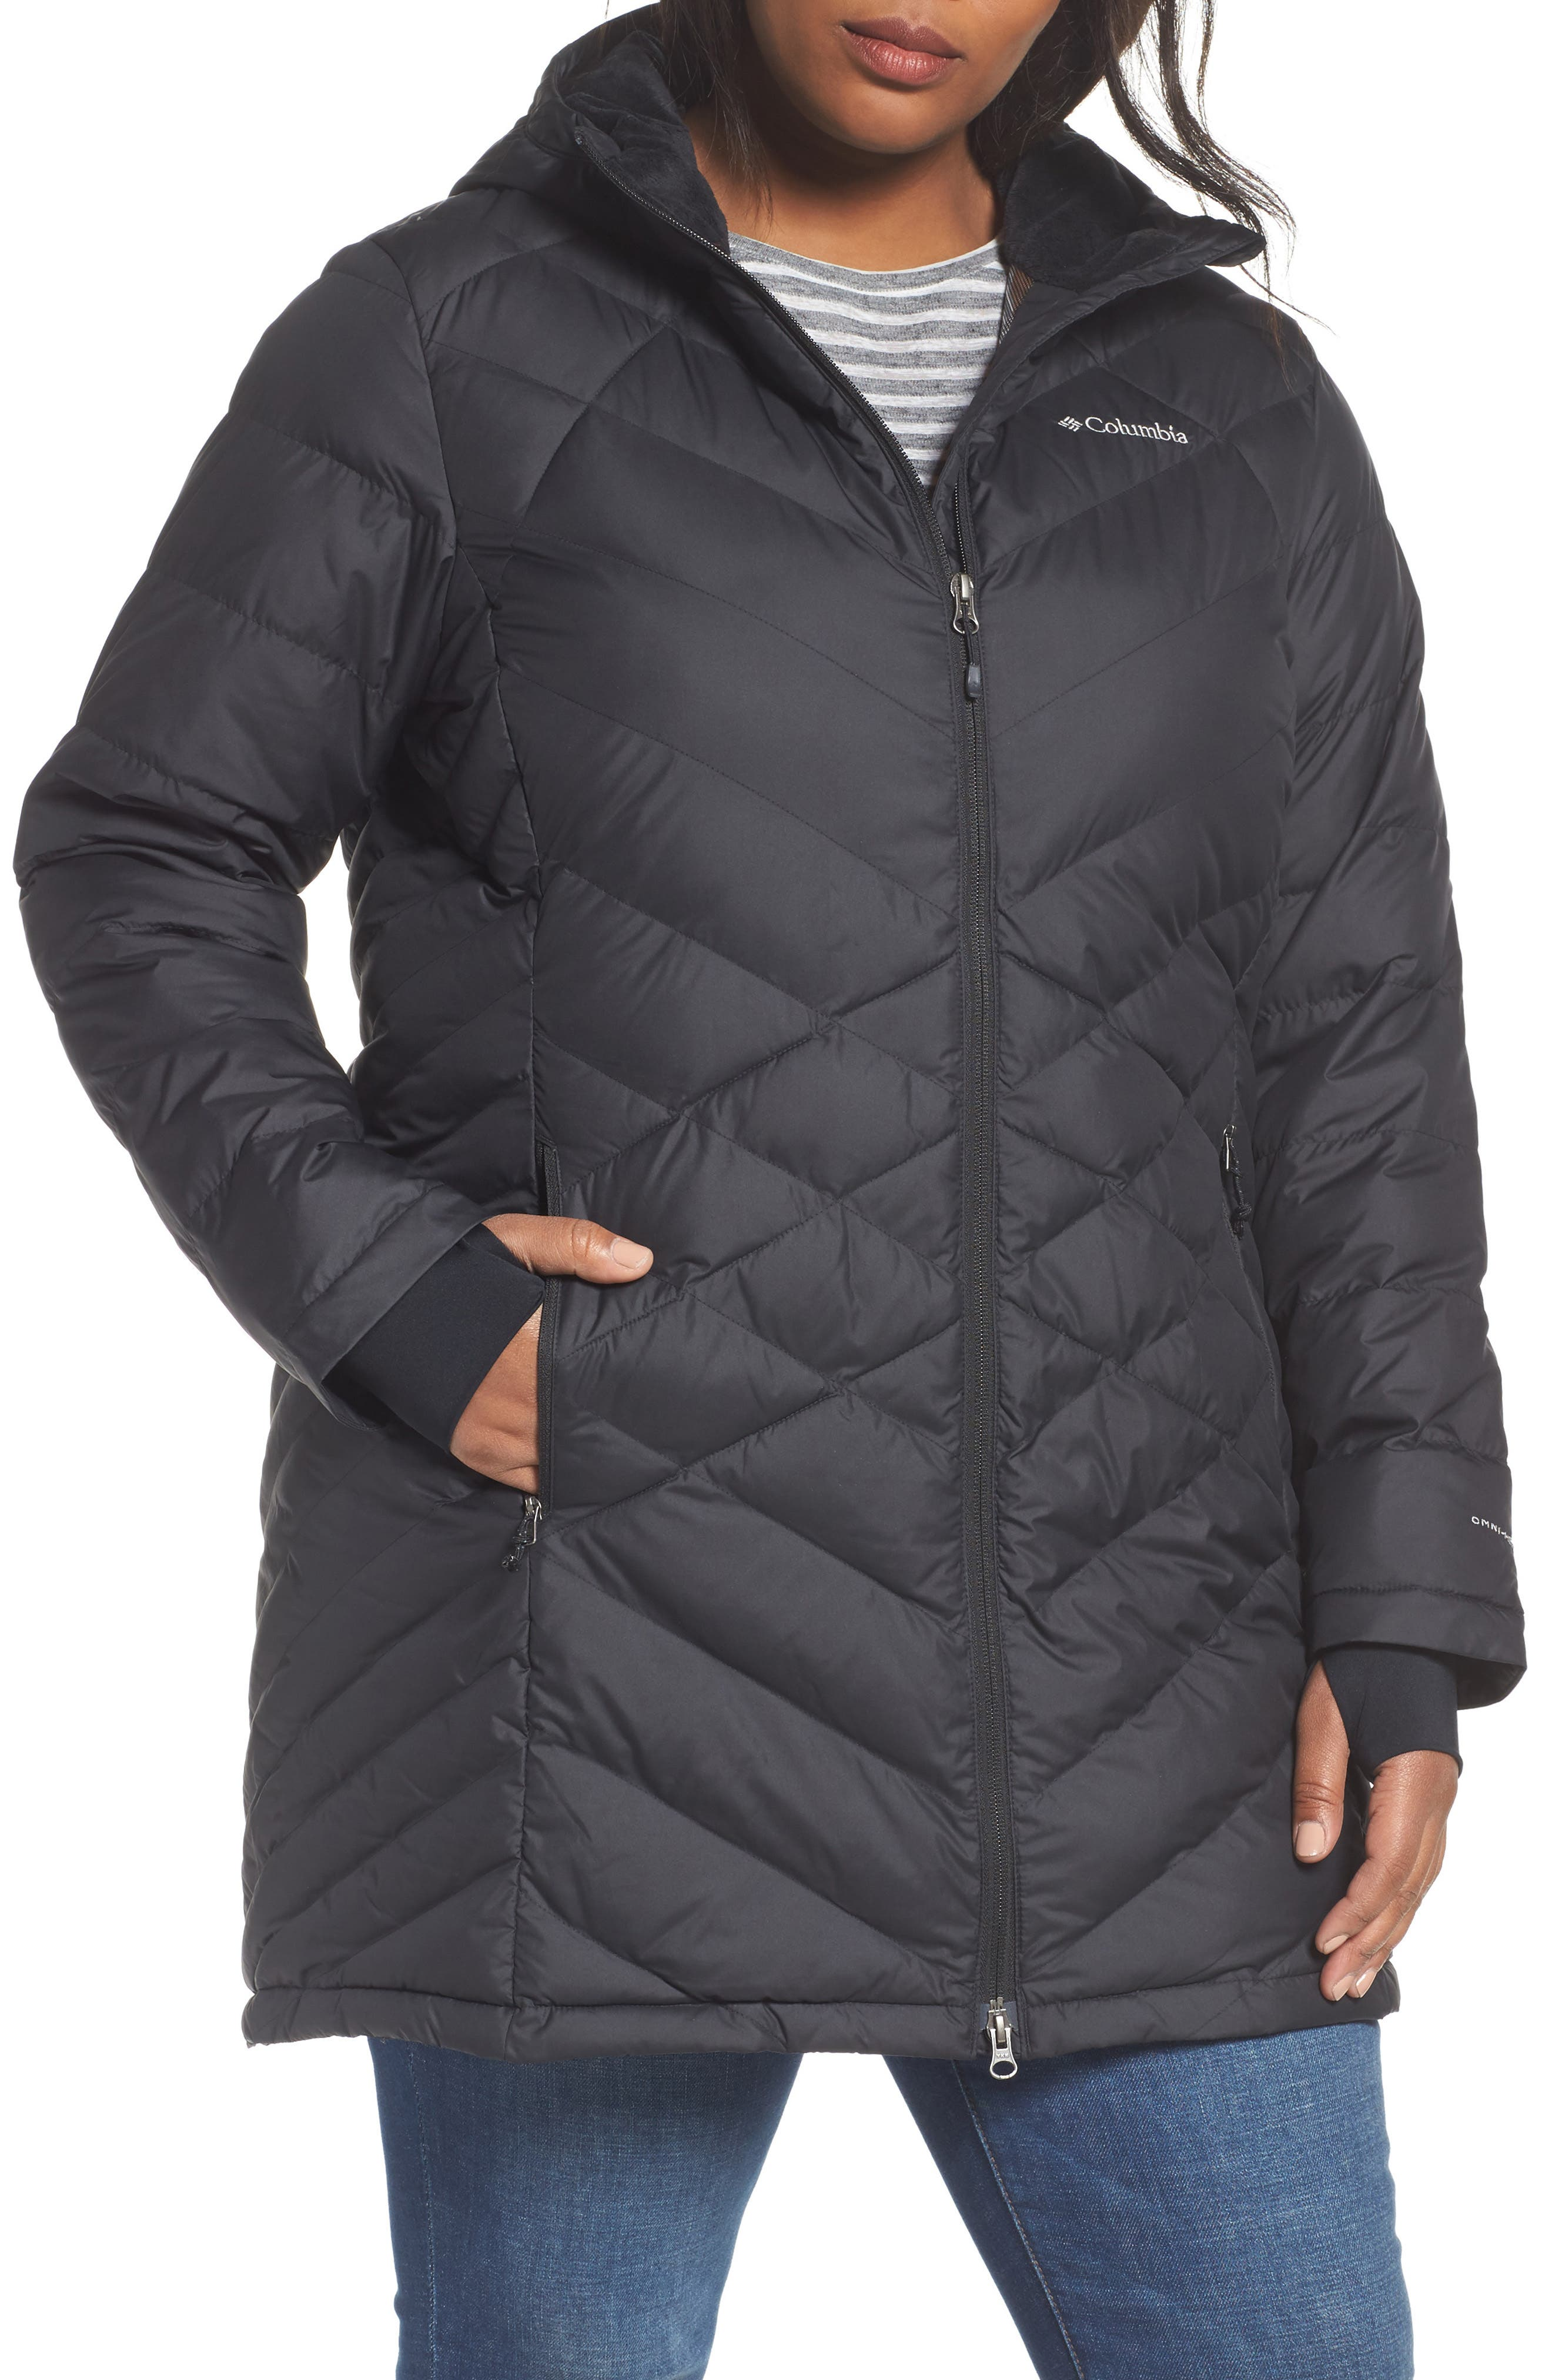 Heavenly Water Resistant Insulated Long Hooded Jacket,                             Alternate thumbnail 4, color,                             010